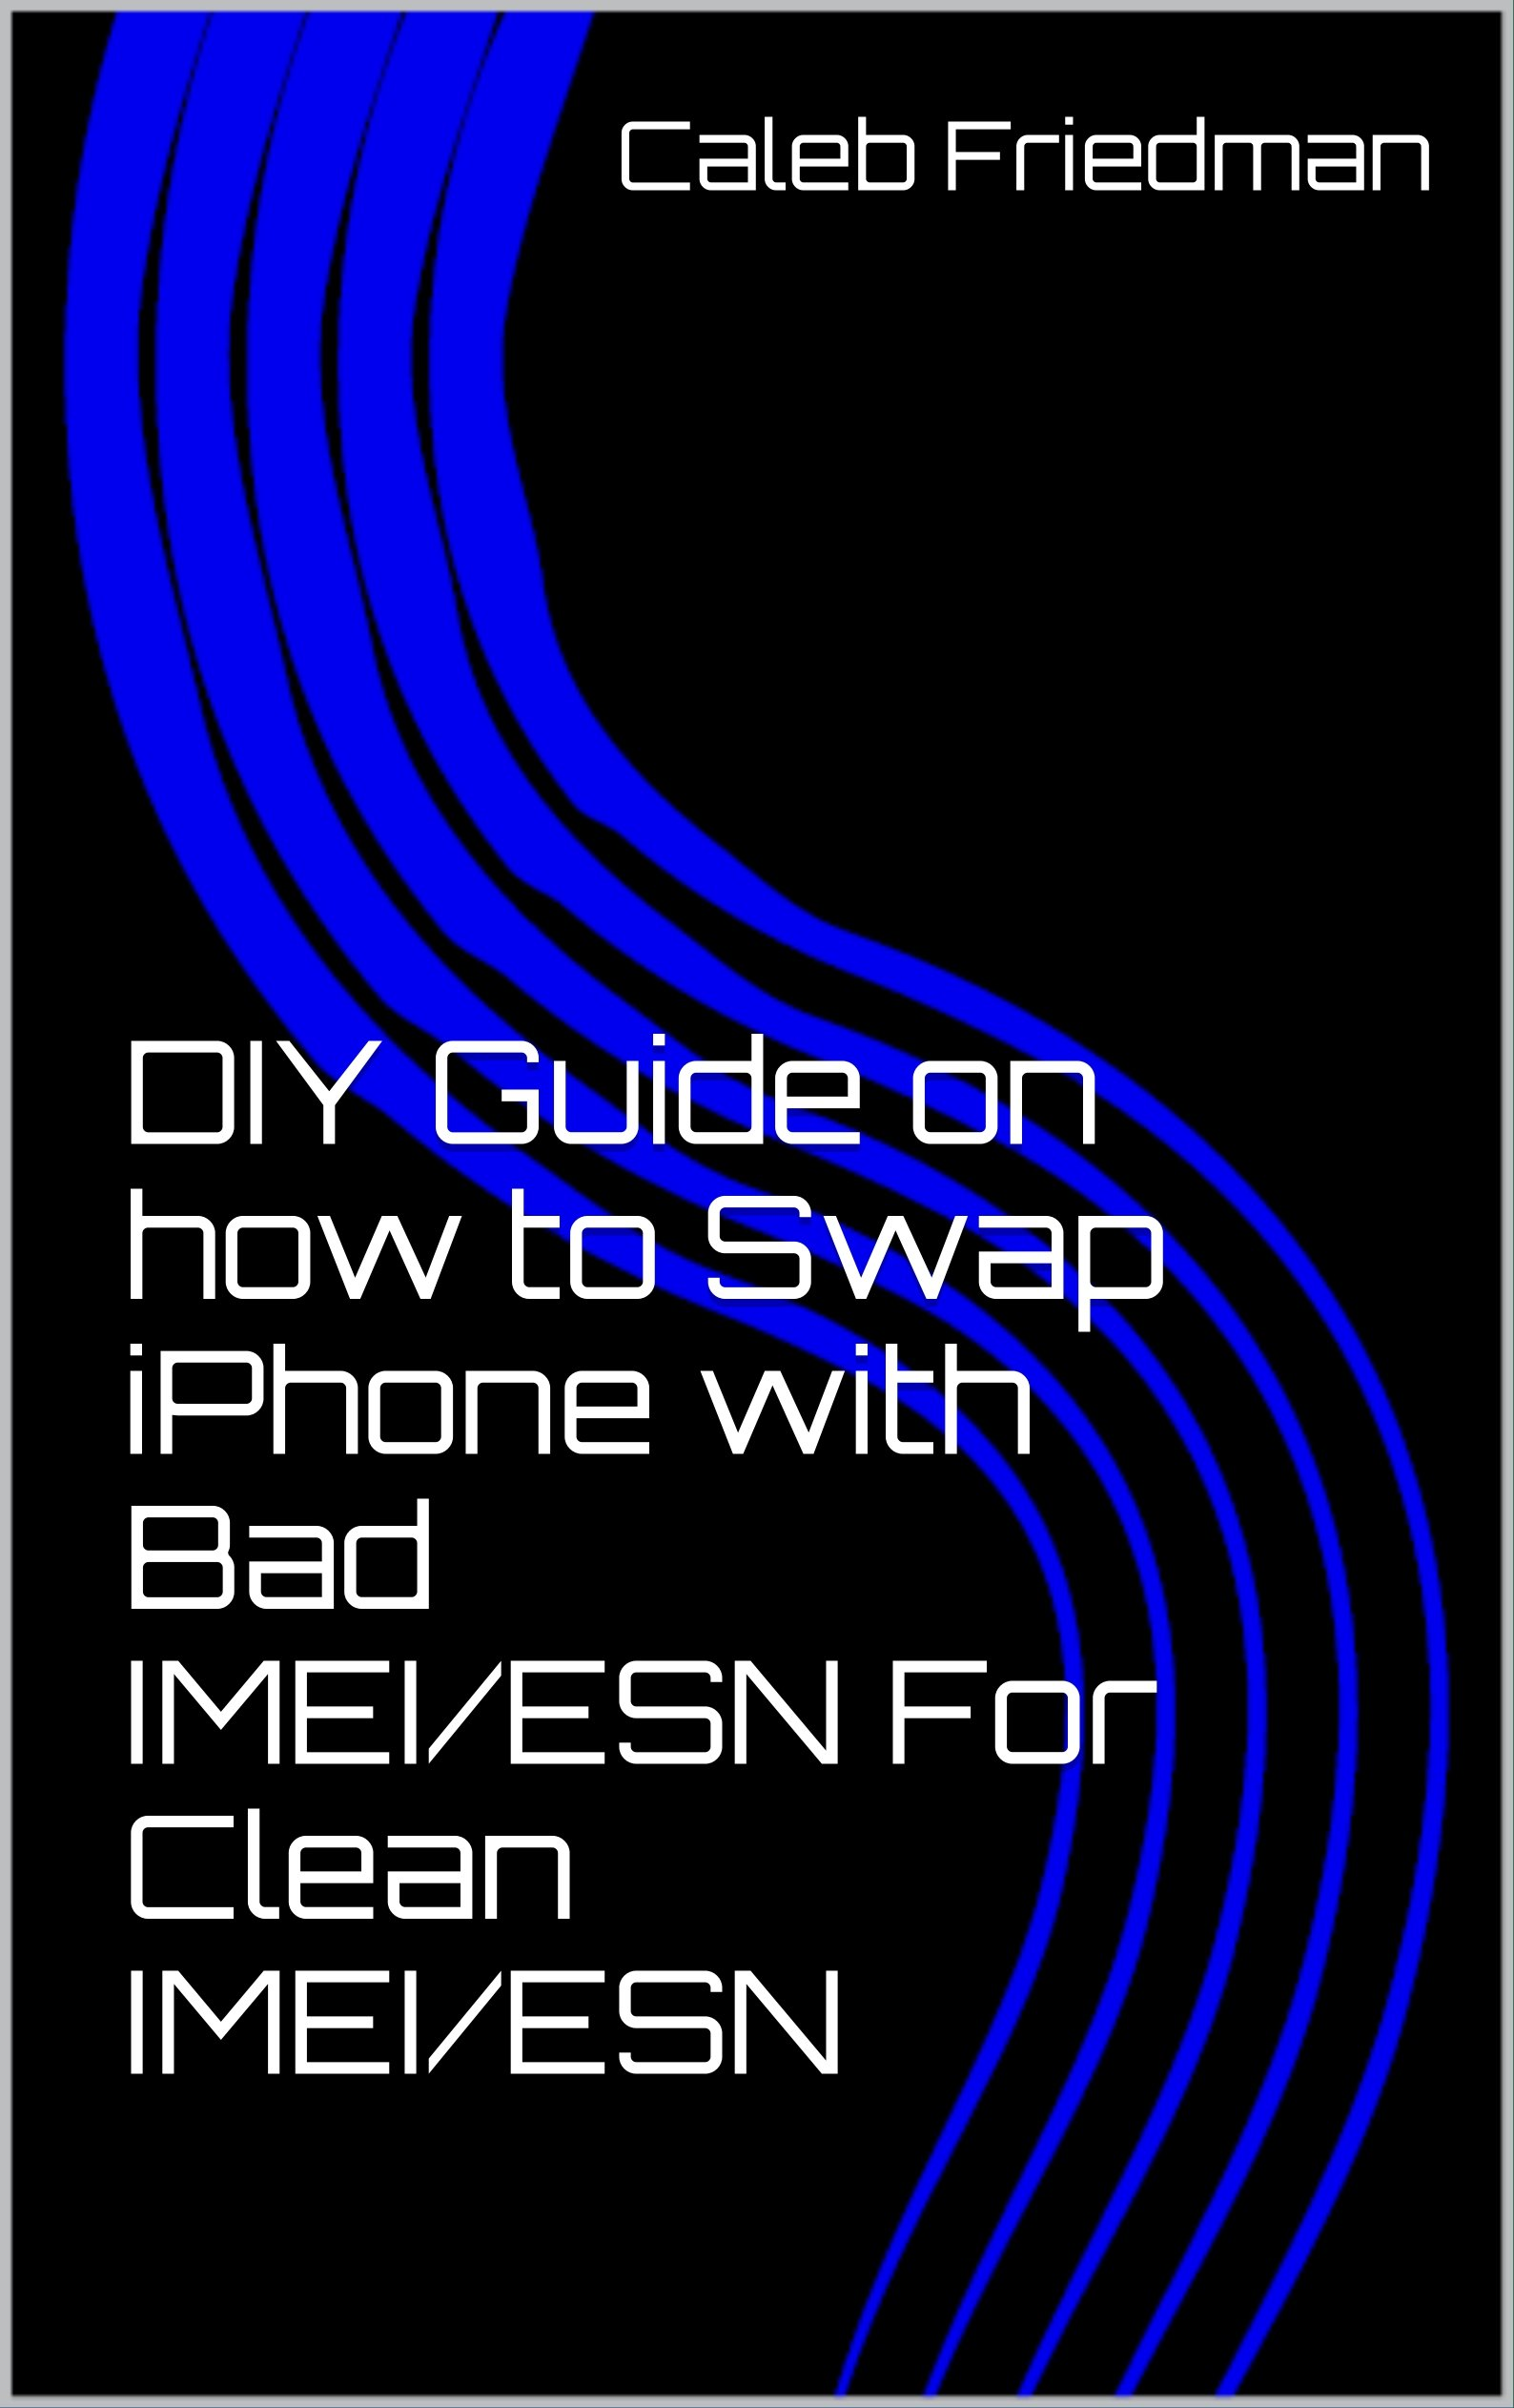 DIY Guide on how to Swap iPhone with Bad IMEI/ESN For Clean IMEI/ESN